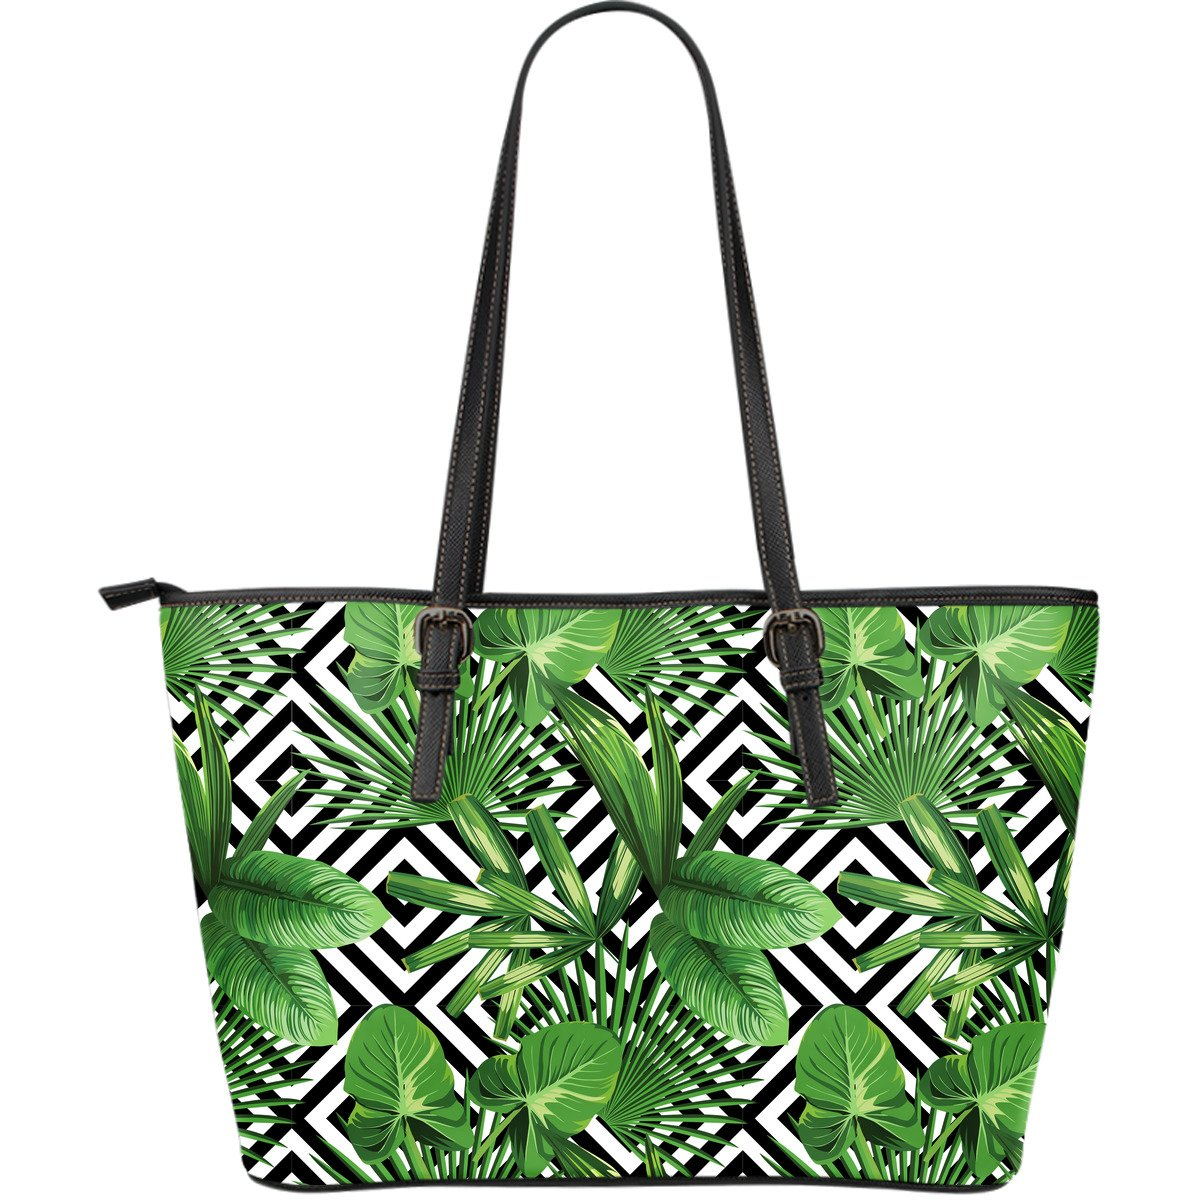 Exotic Tropical Leaves Pattern Print Leather Tote Bag GearFrost